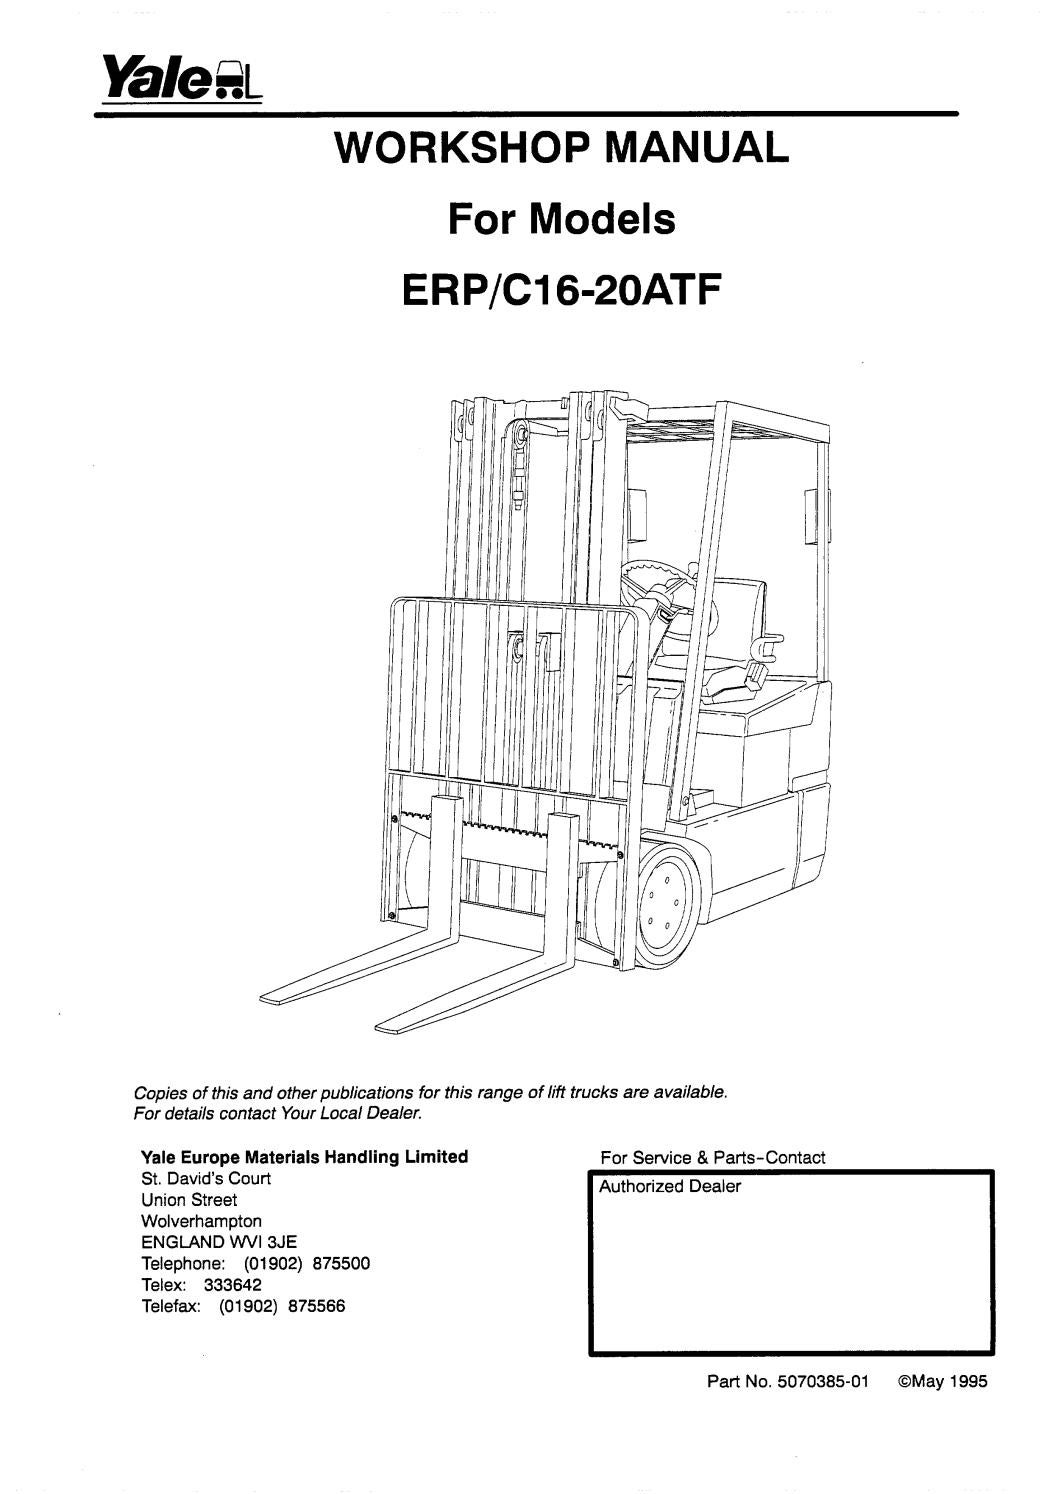 YALE (A807) ERP16-20ATF FORKLIFT Service Repair Manual by 1639110 - issuu